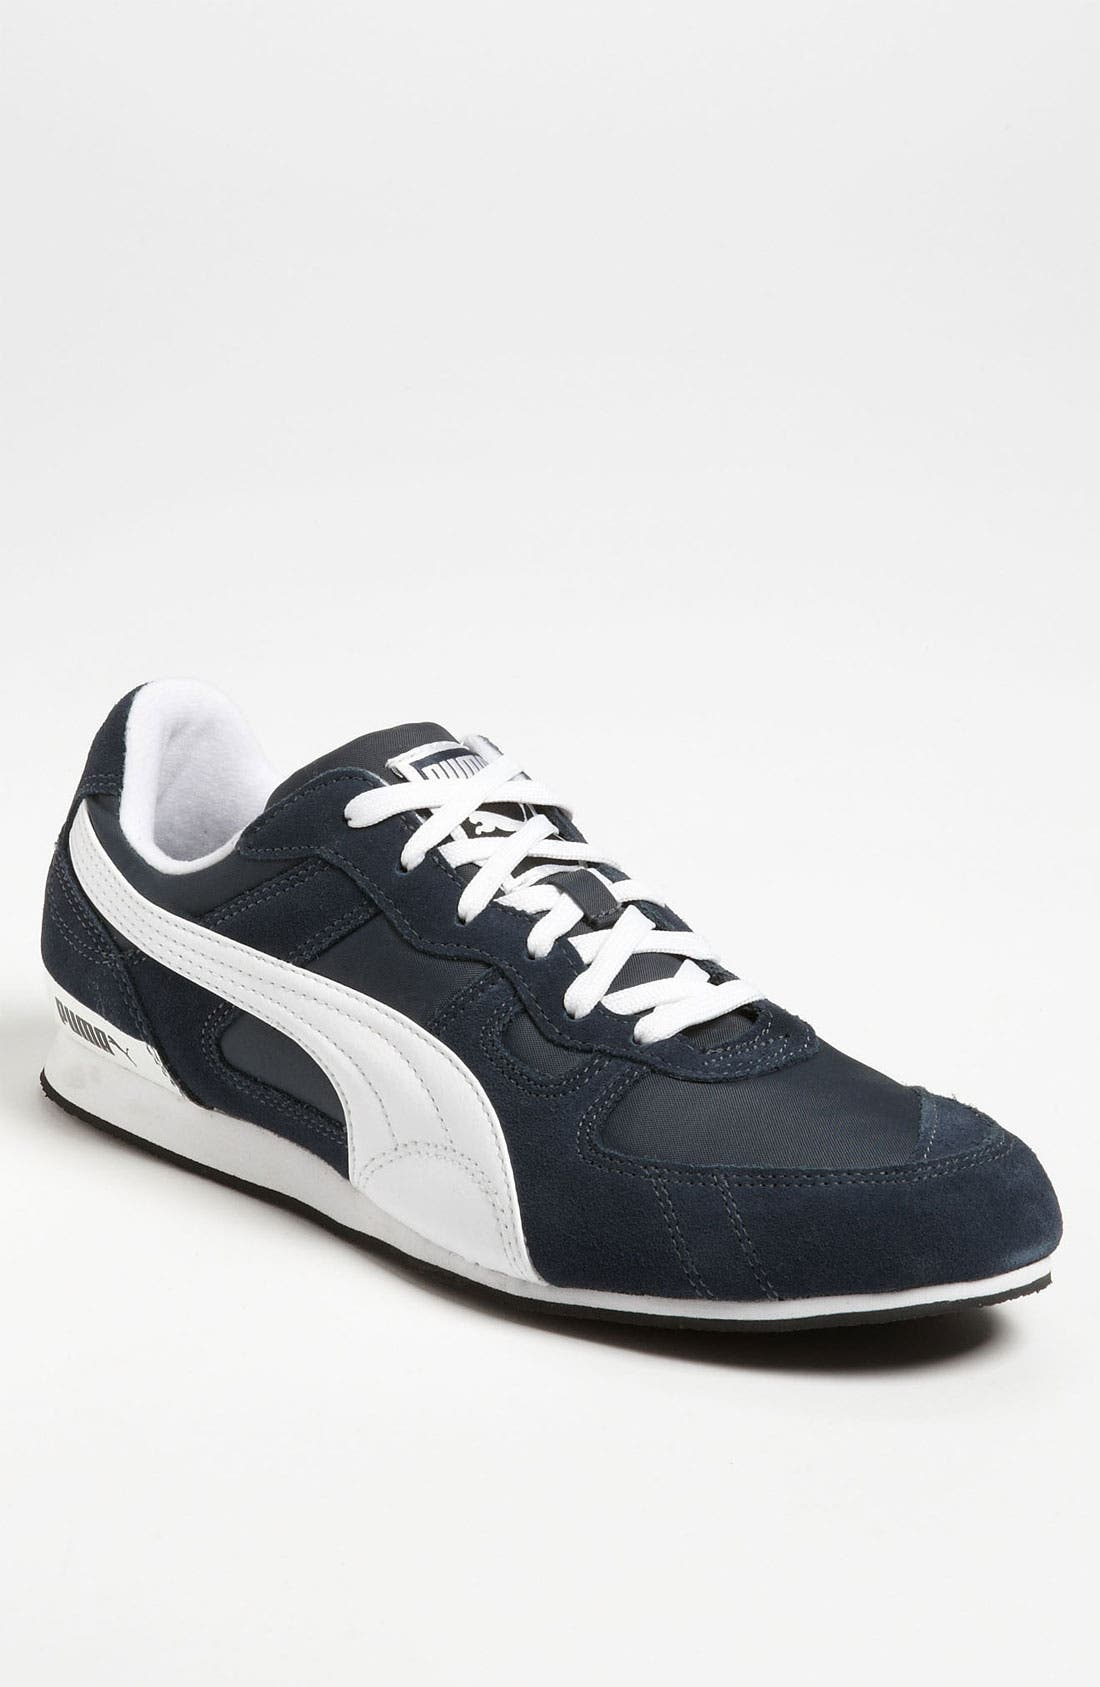 Main Image - PUMA 'Bayndyt' Sneaker (Men) (Online Exclusive)